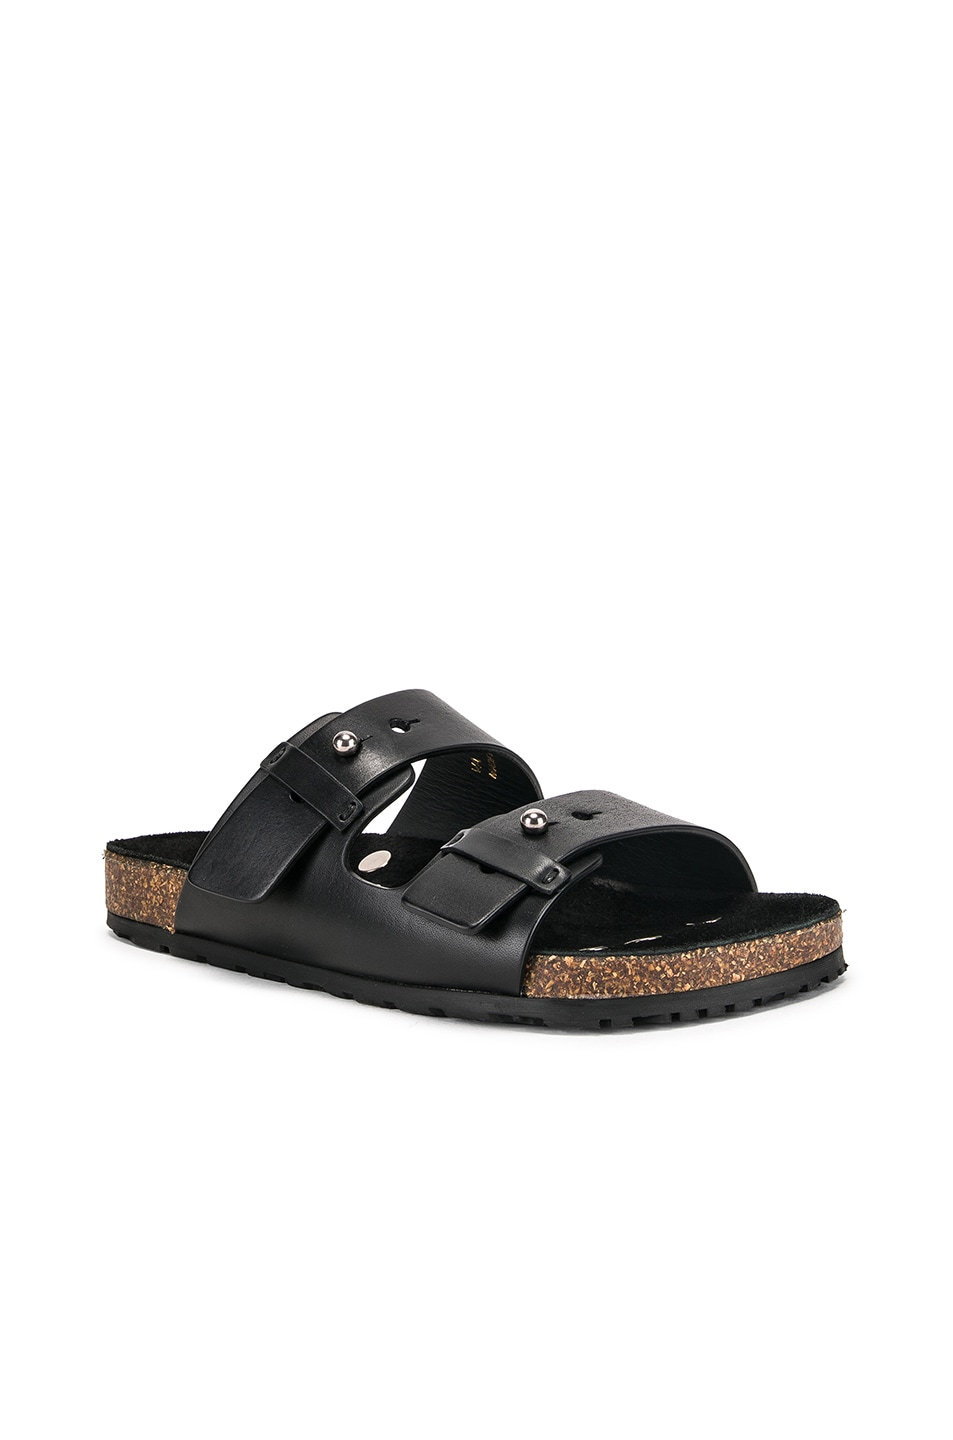 Image 2 of Saint Laurent Jimmy Sandals in Black